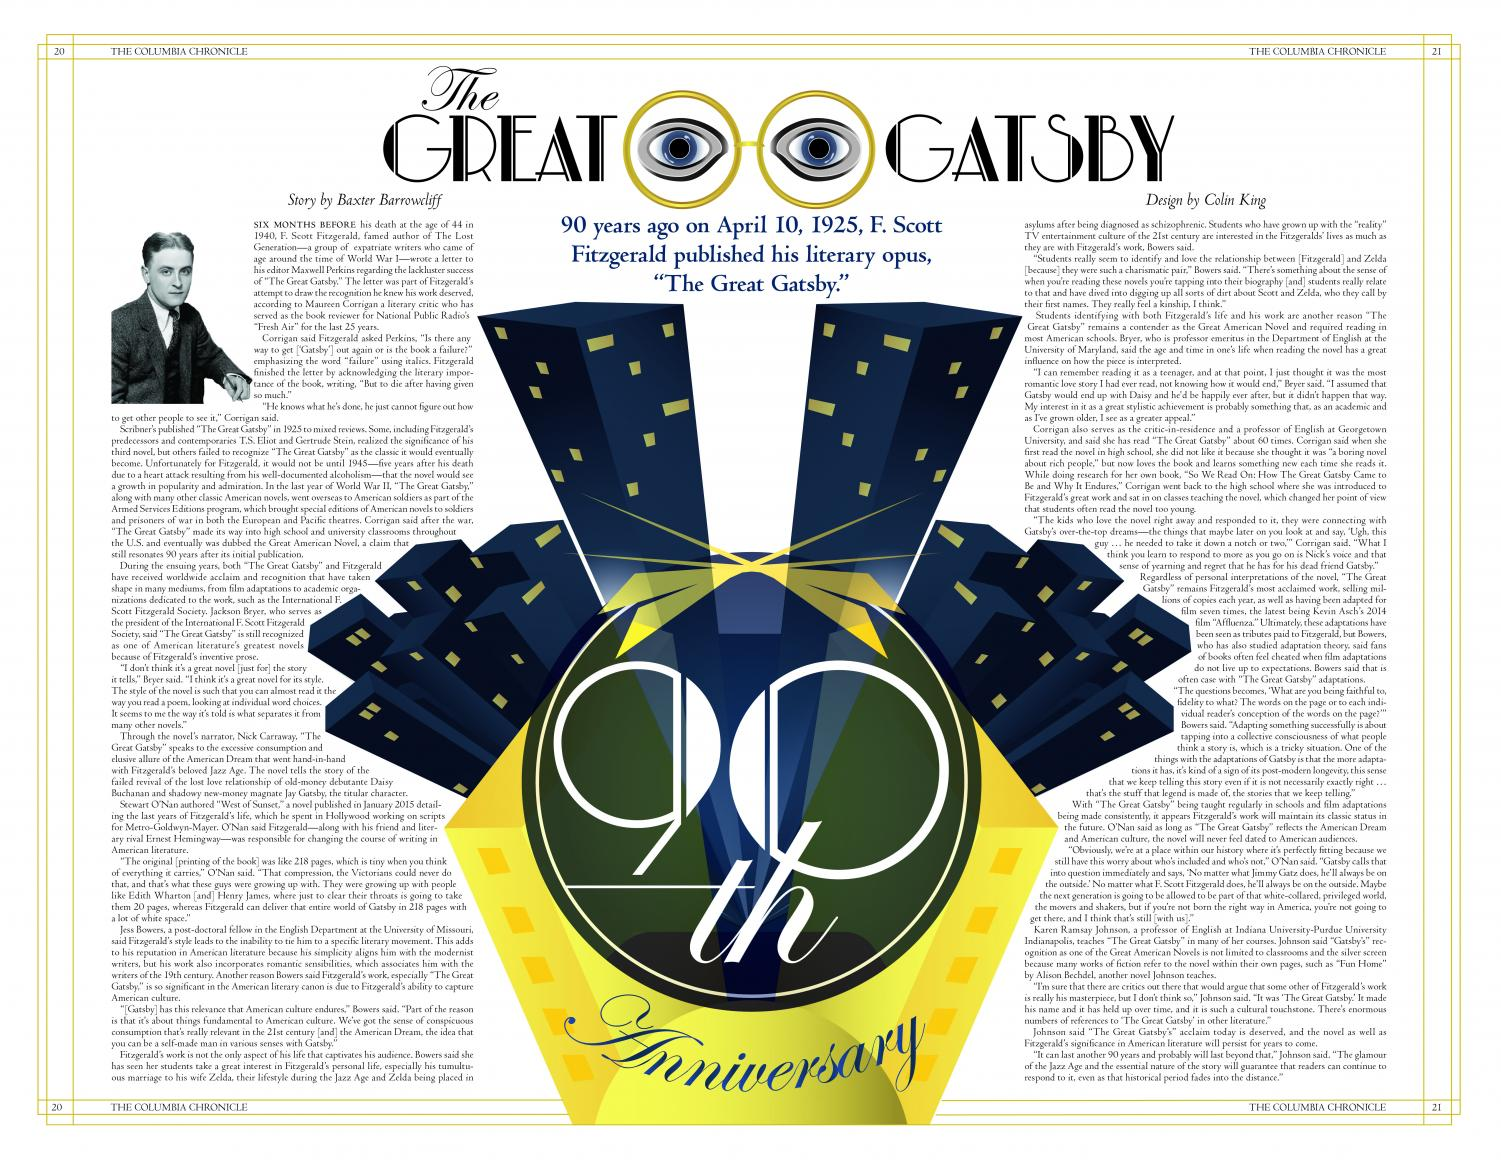 The Great Gatsby 90th Anniversary